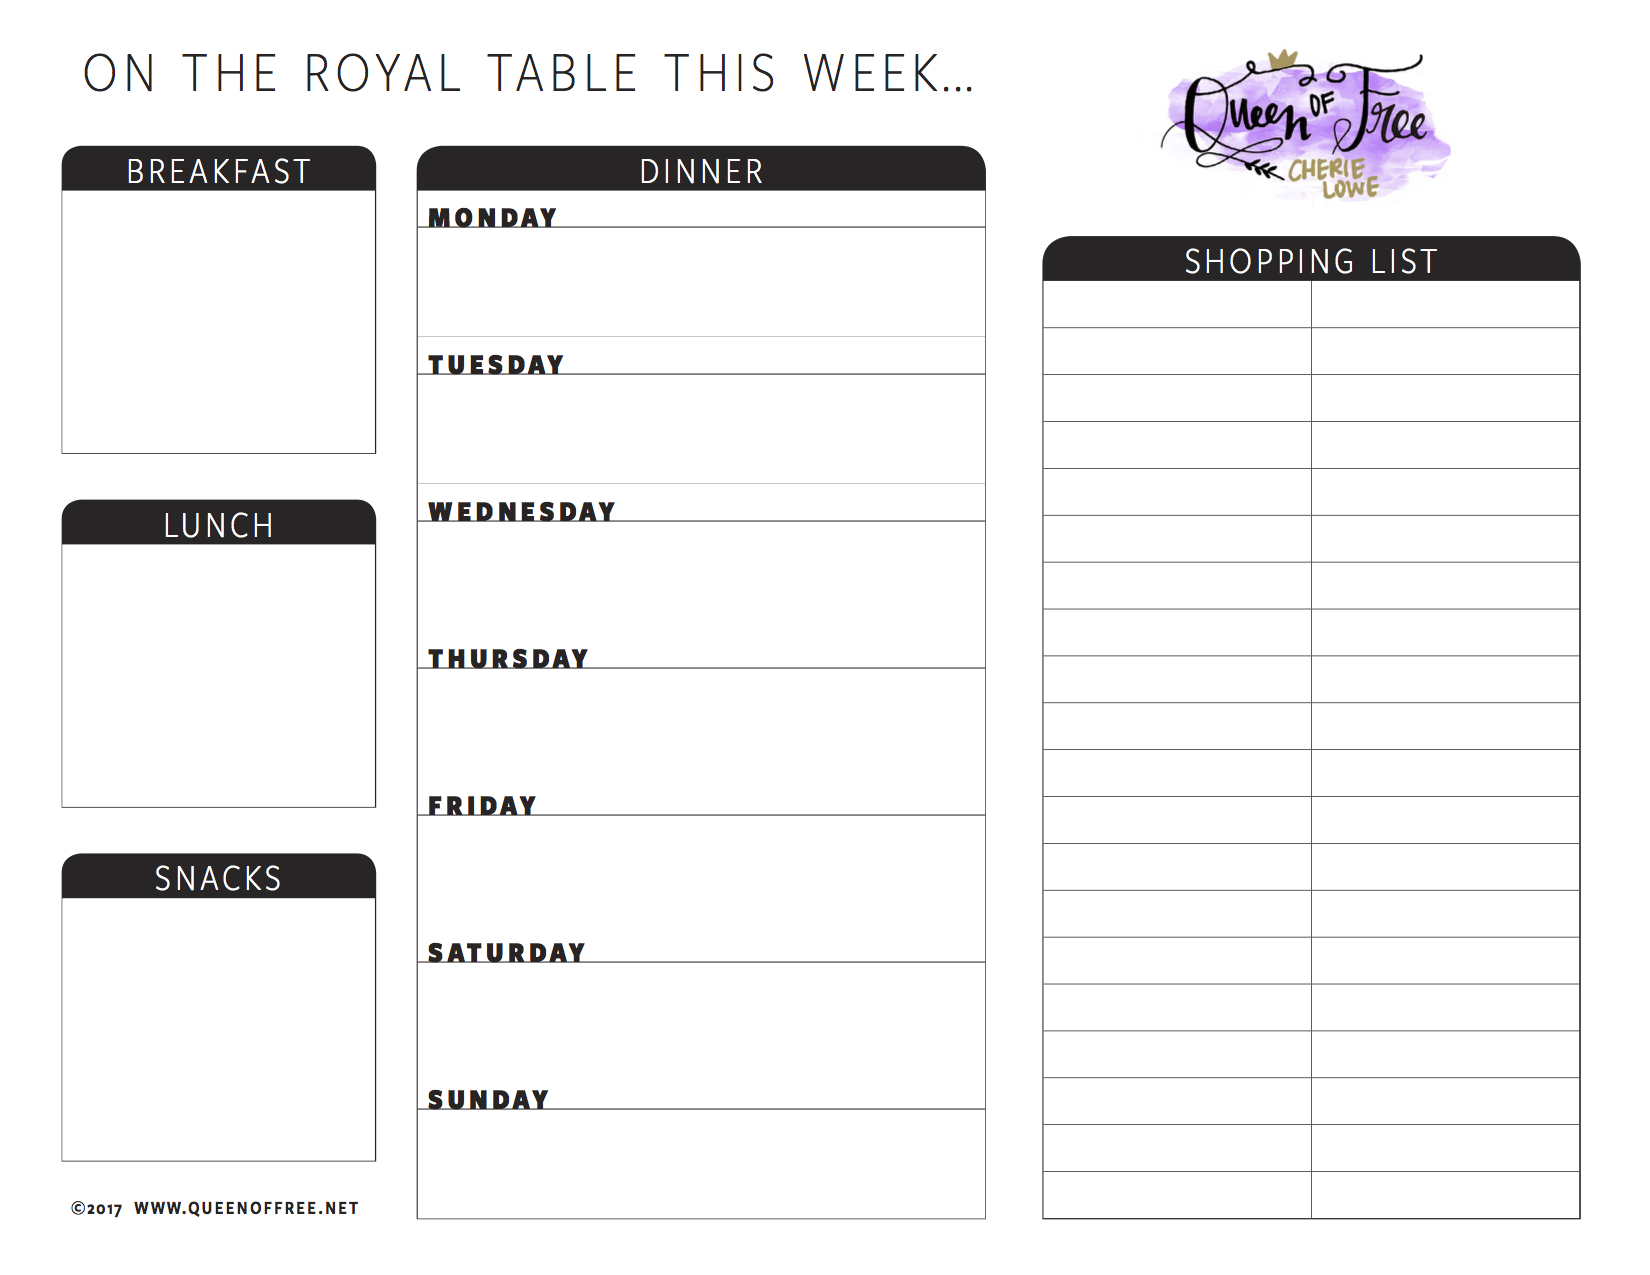 image regarding Weekly Menu Planner Printable titled All Fresh: Absolutely free Printable Supper Planner On your own Can Edit - Queen of